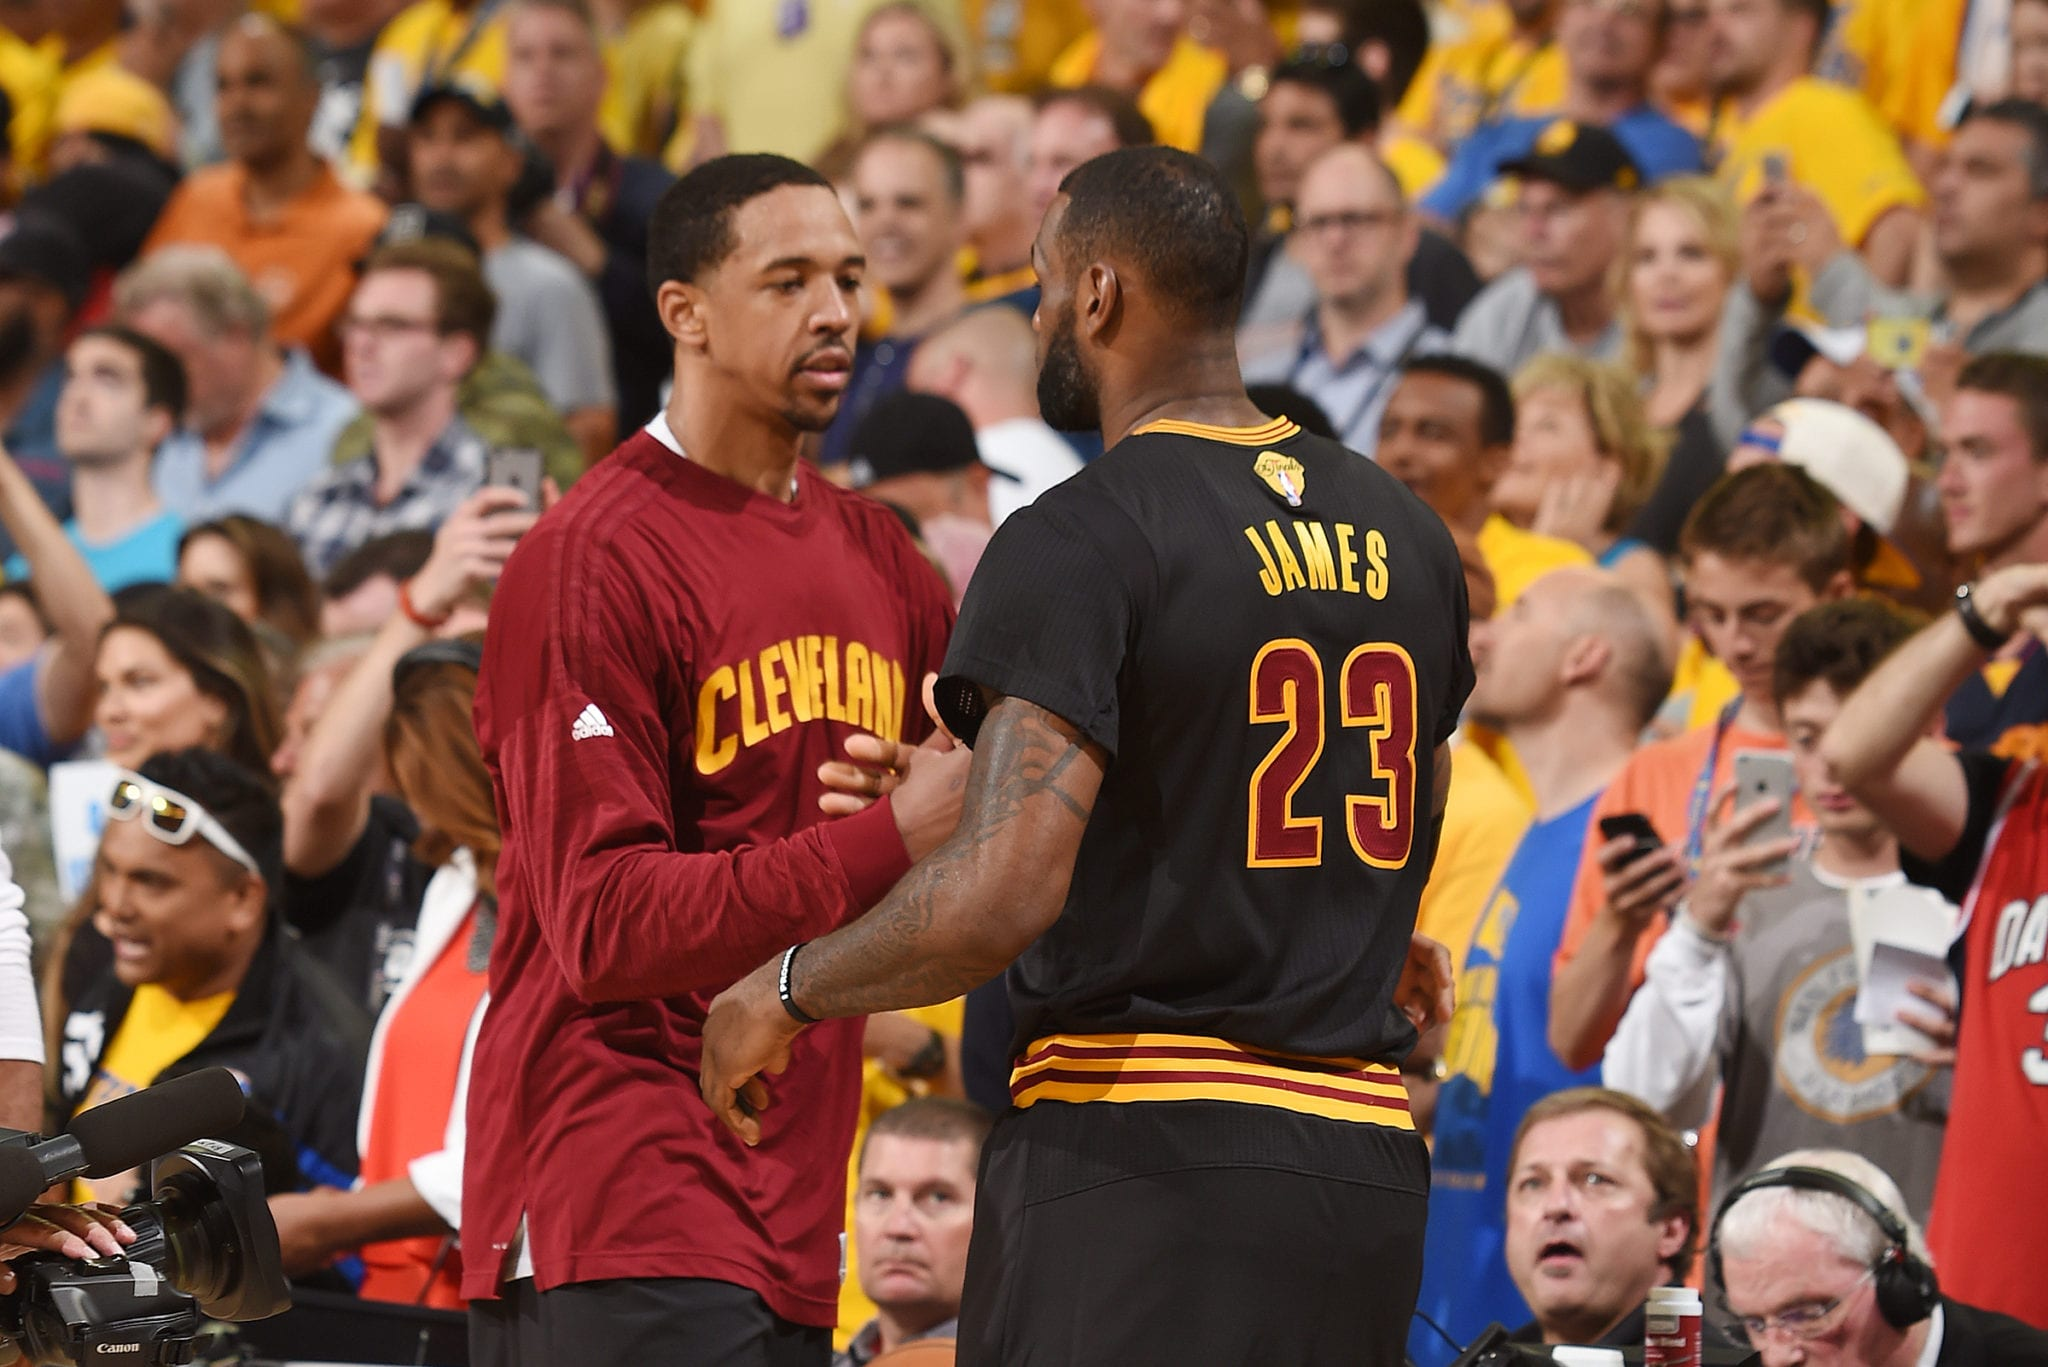 Channing Frye Says LeBron Is Better Than Jordan